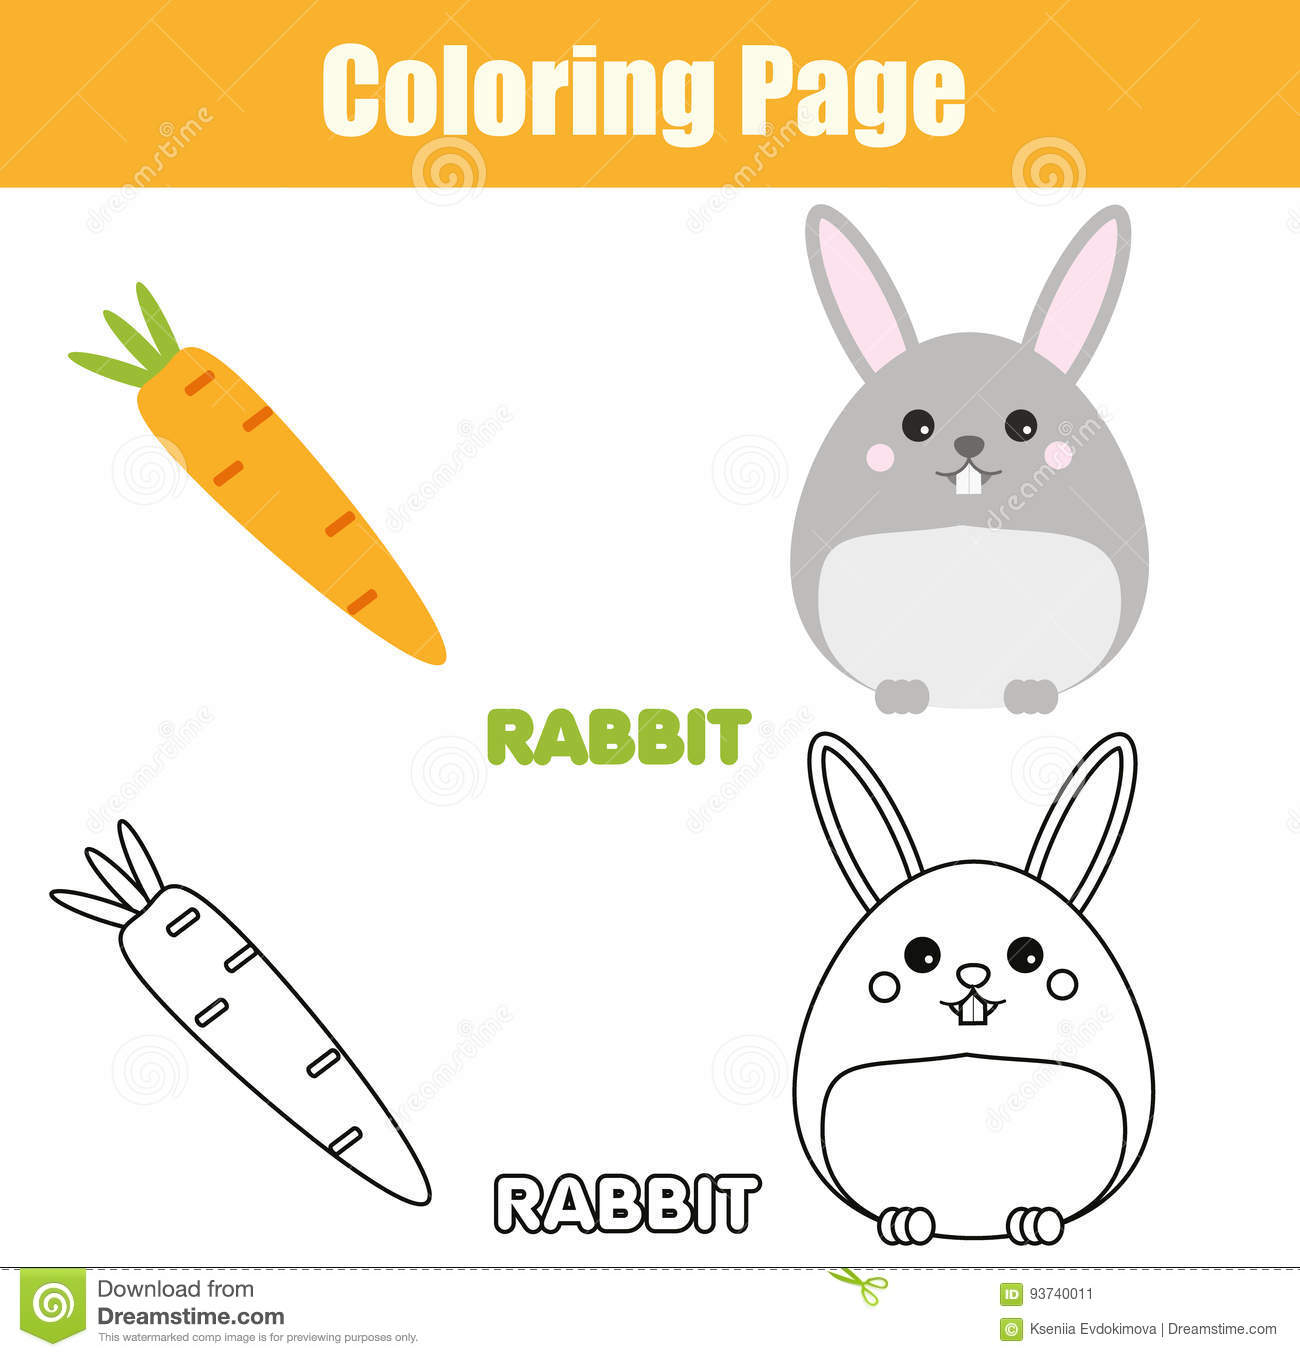 picture relating to Rabbit Printable titled Coloring Webpage With Rabbit, Bunny Individuality. Enlightening Sport